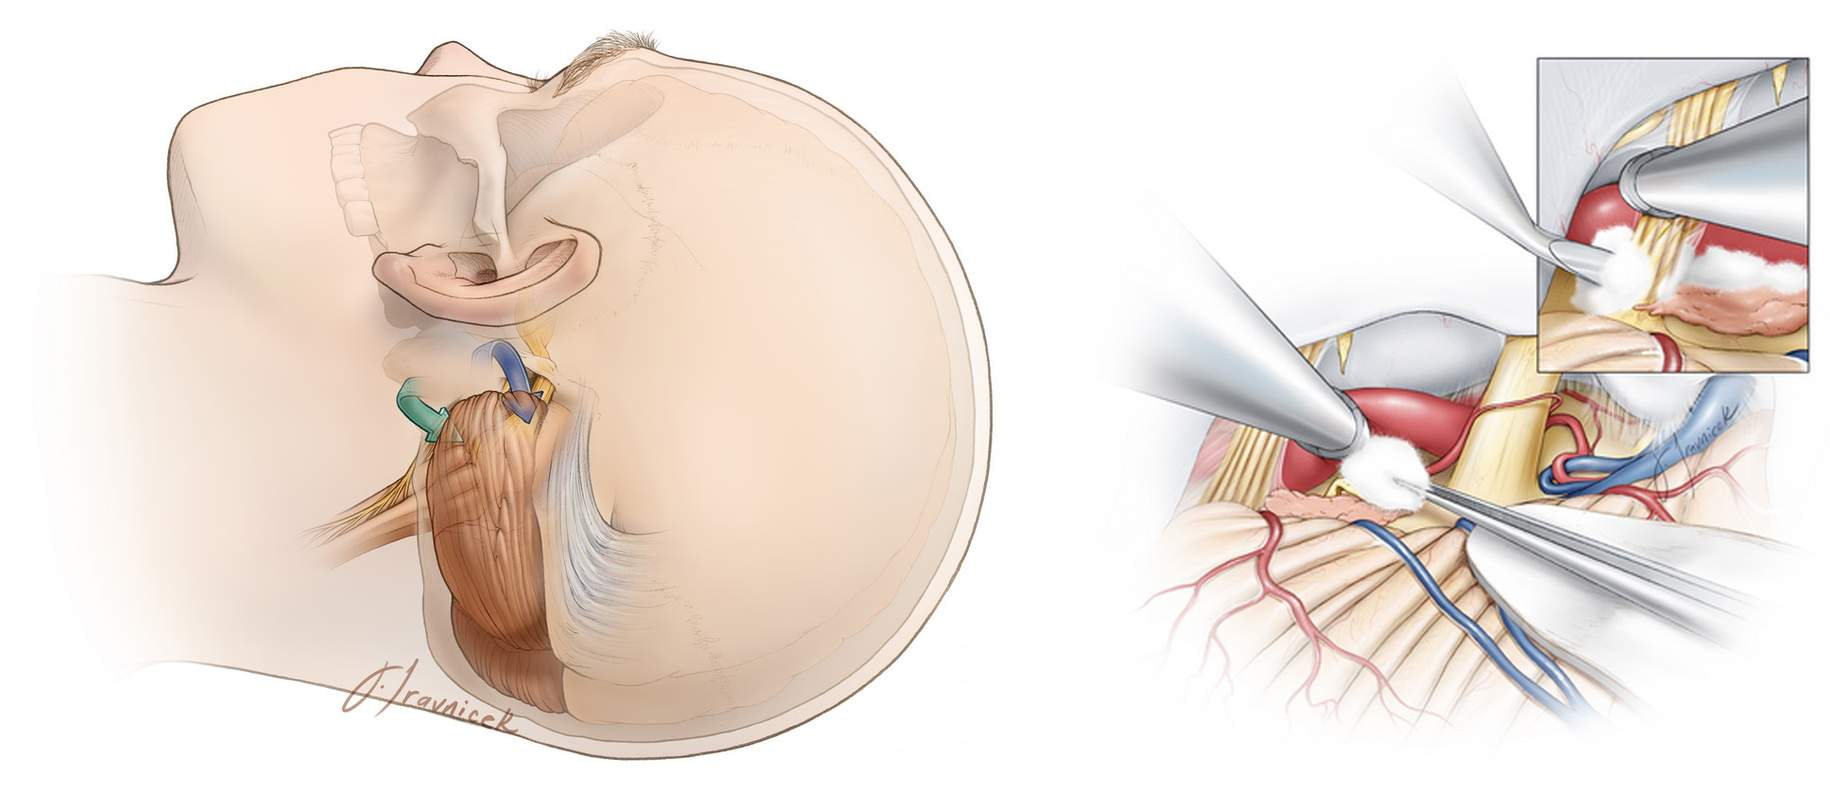 Figure 2. Area of the operation (left) and placement of packing material between the artery and nerve root to decompress the nerve (right).